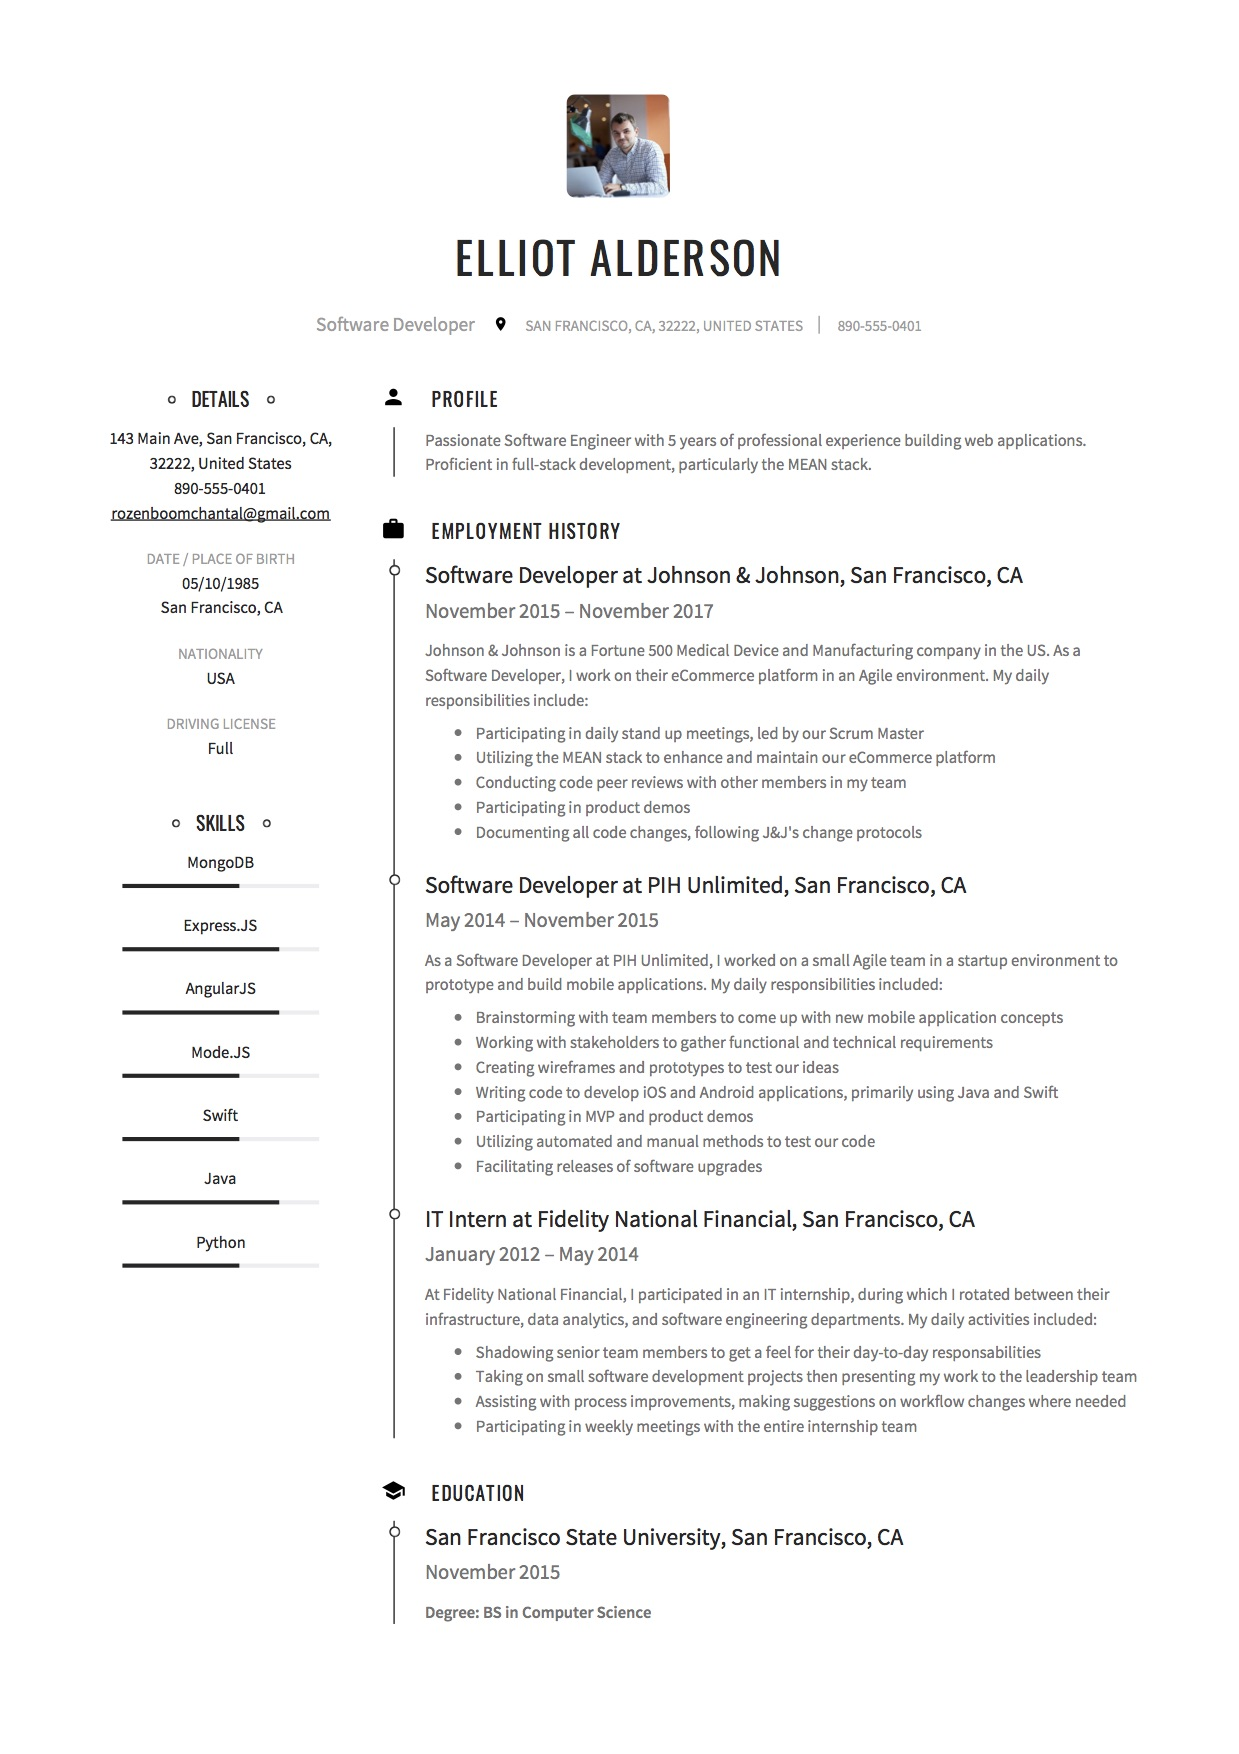 elliot alderson software developer resume sample1